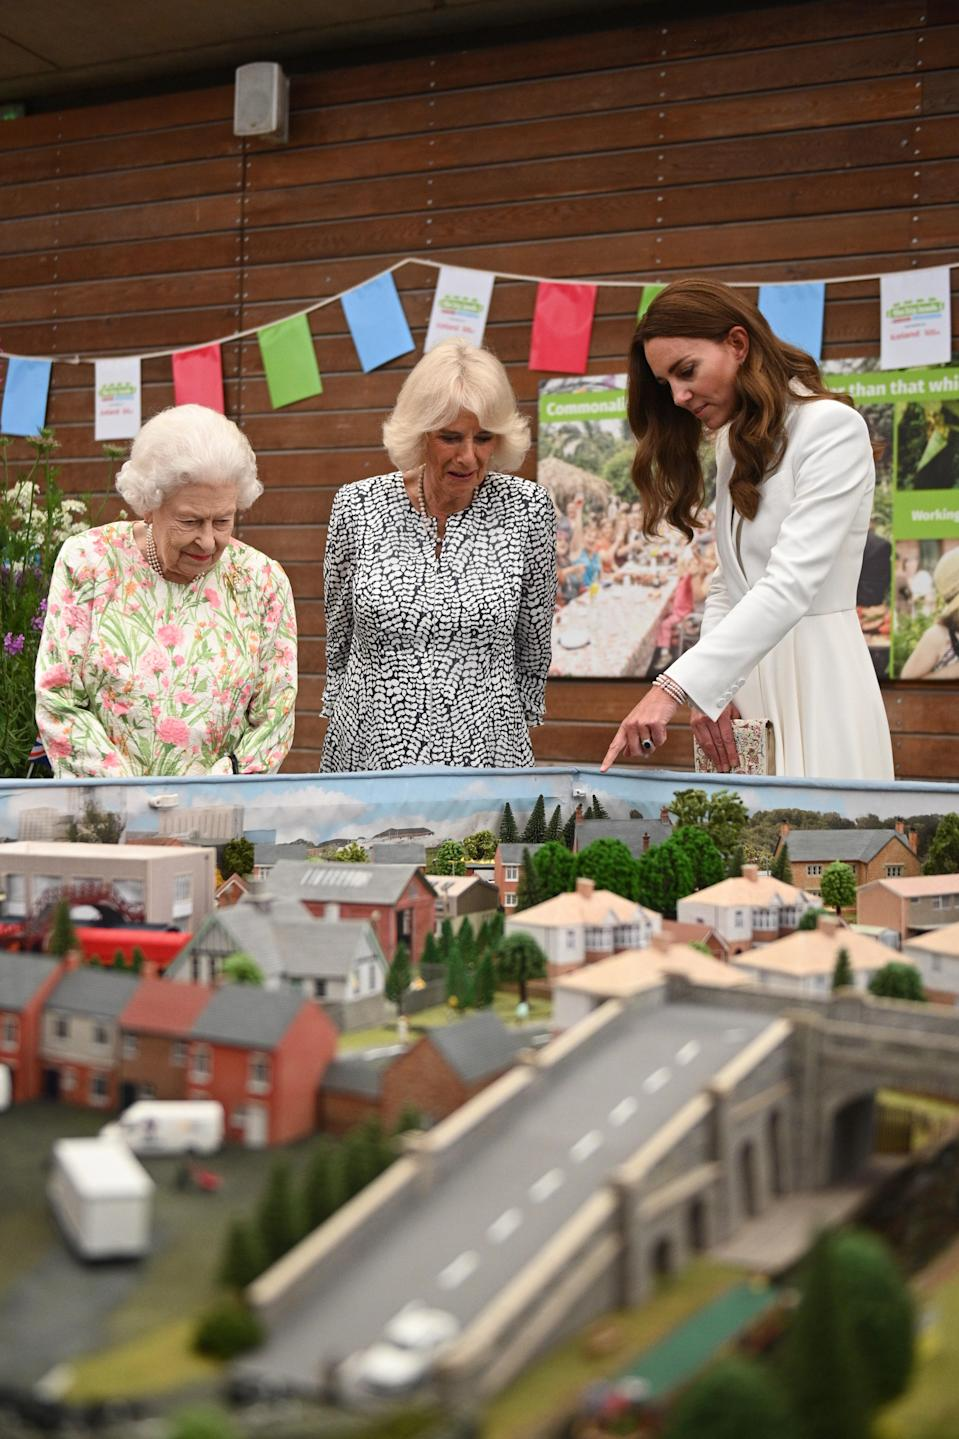 Queen Elizabeth, the Duchess of Cornwall, and the Duchess of Cambridge in 2021